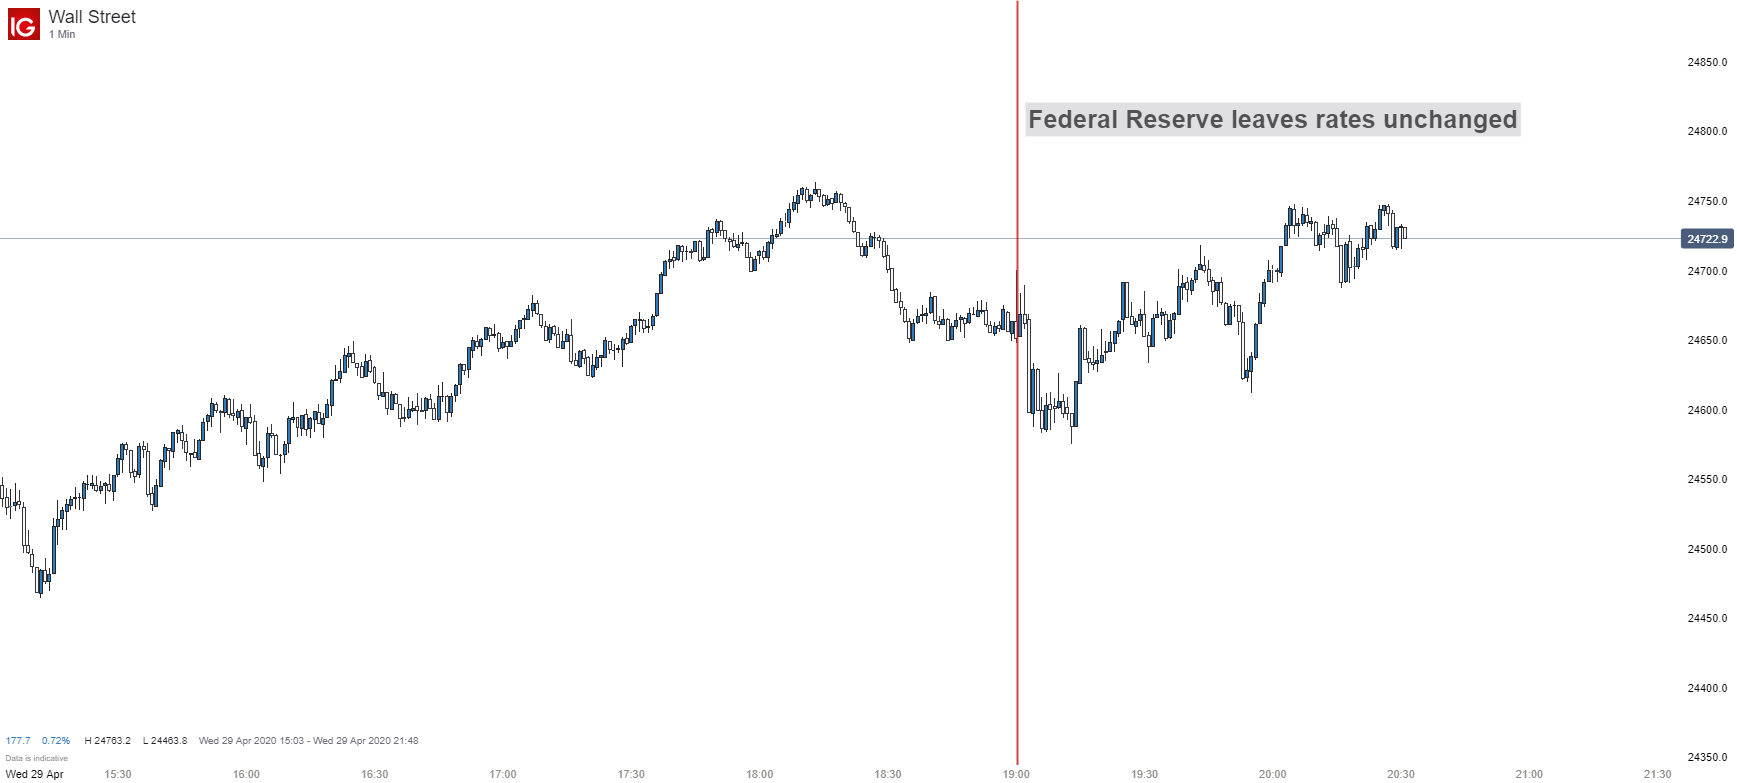 Dow Jones Index Remains Near Session Highs On Fomc Rate Decision